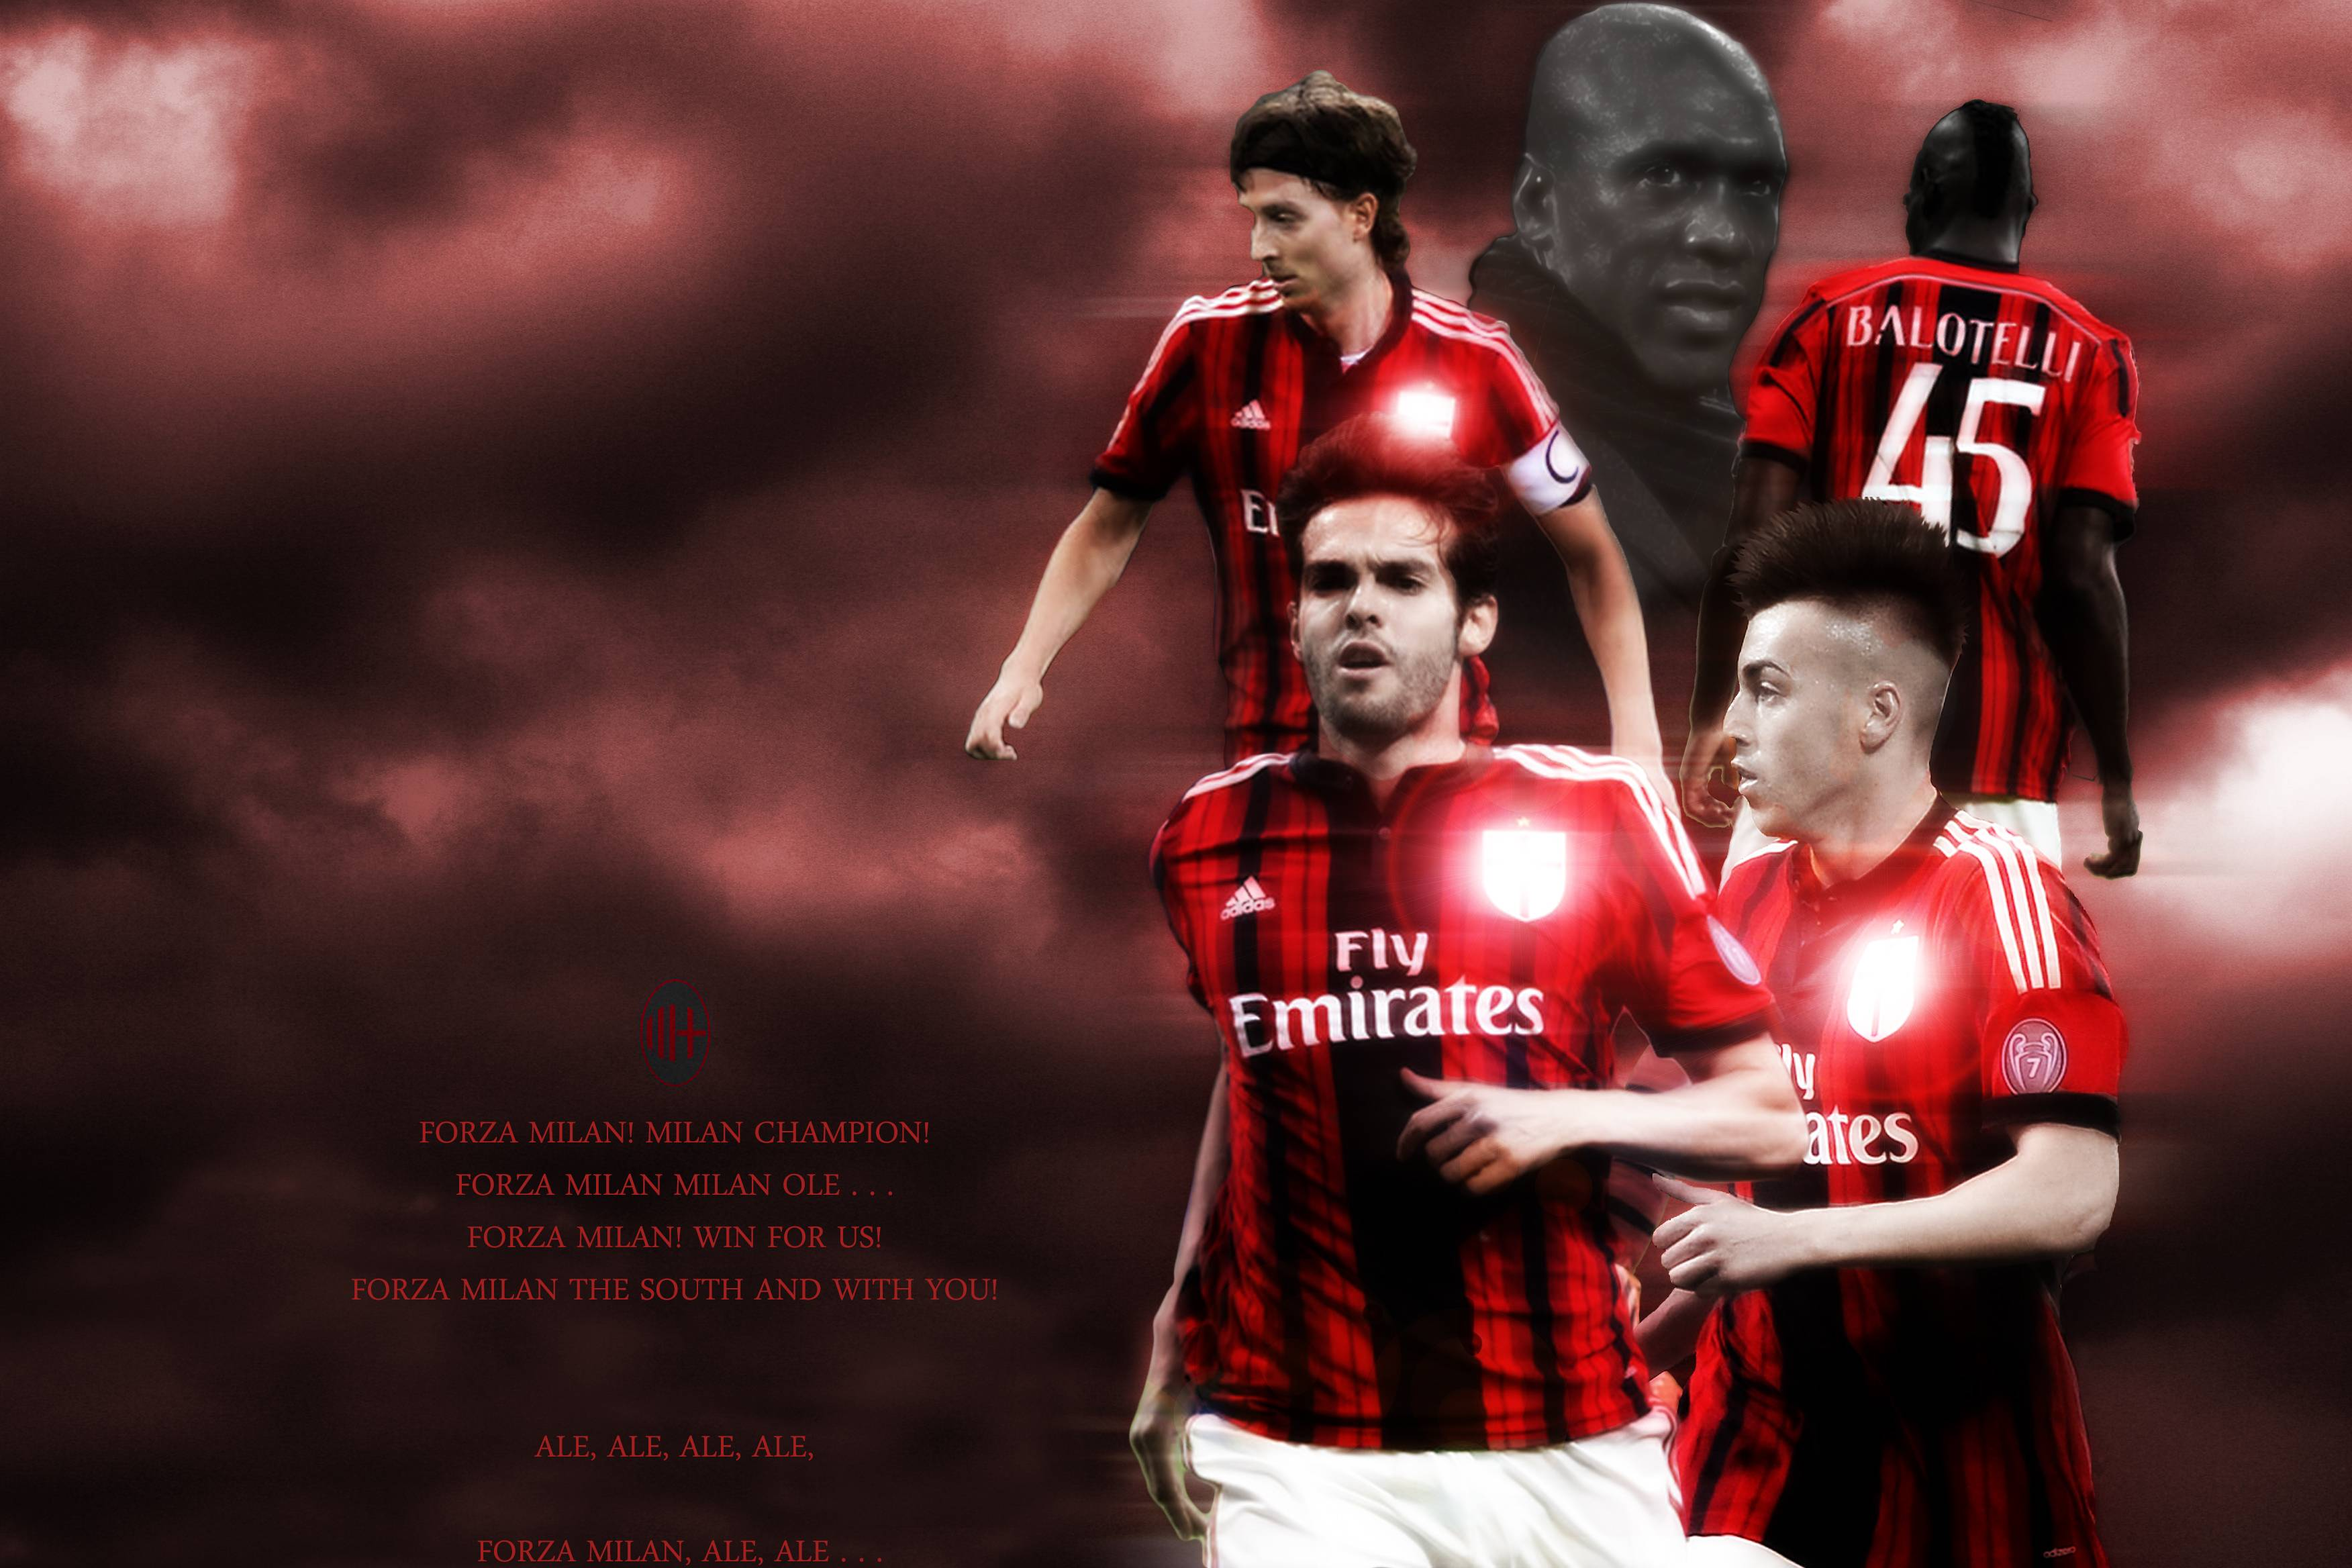 Hd wallpaper ac milan - Ac Milan 2014 Desktop Pictures 1762 Football Wallpapers Football